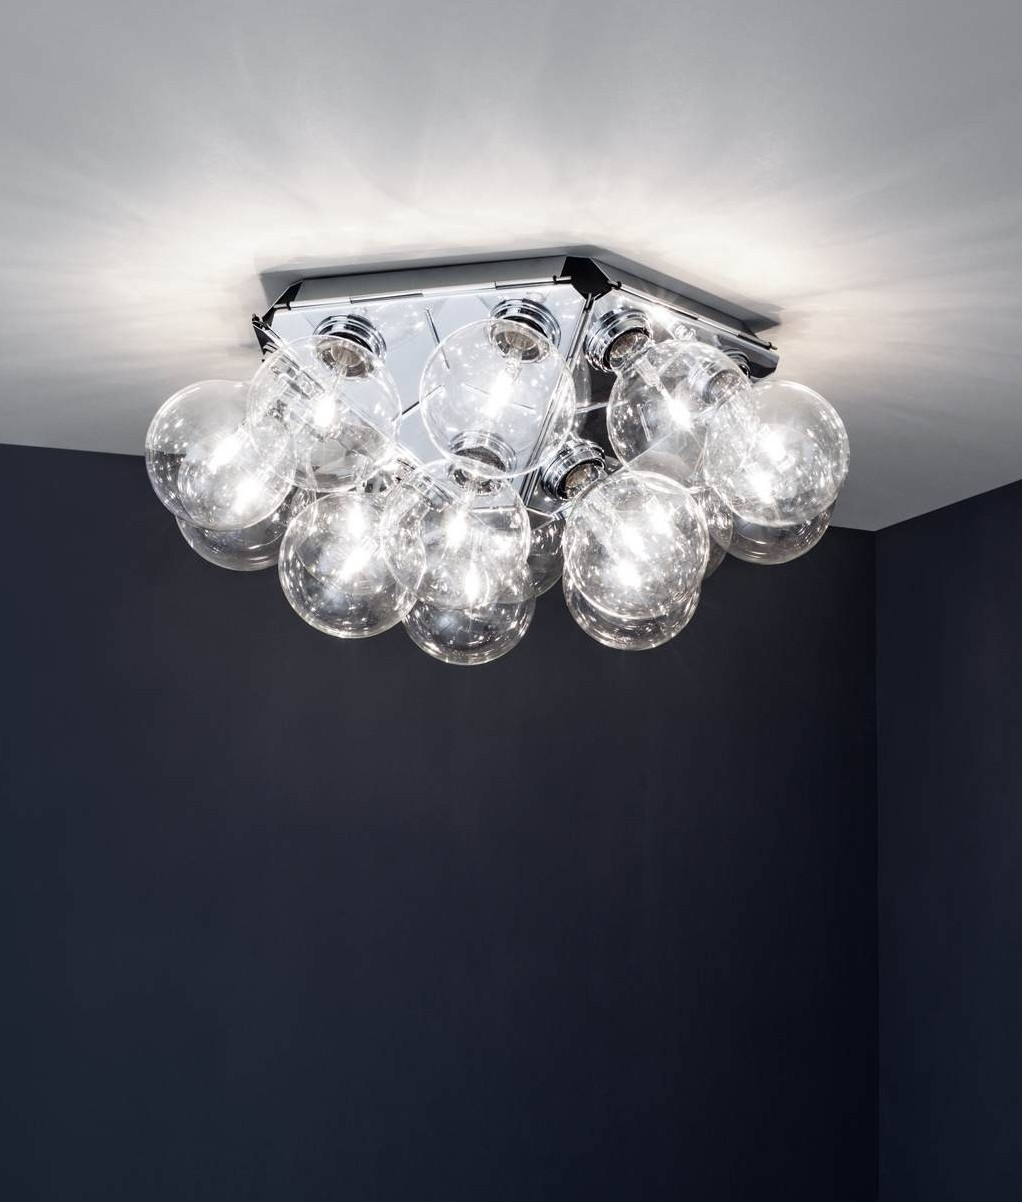 Battery Operated Wall Mounted Picture Lights